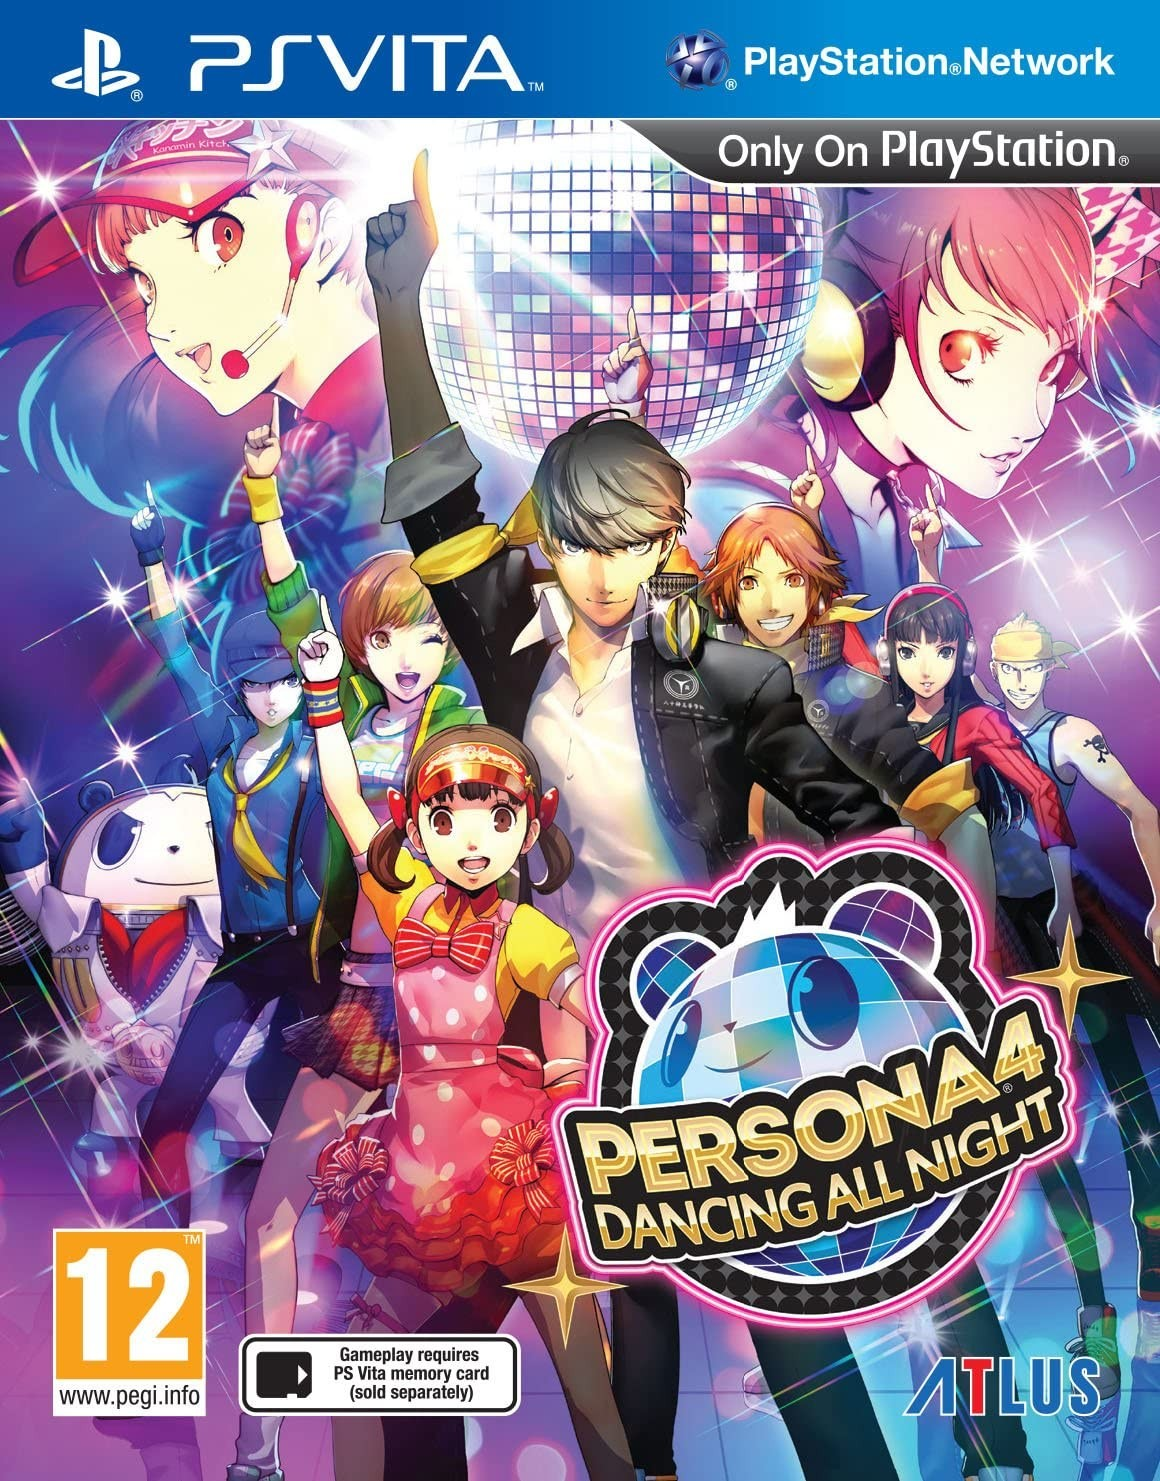 Persona 4 Dancing All Night PSV